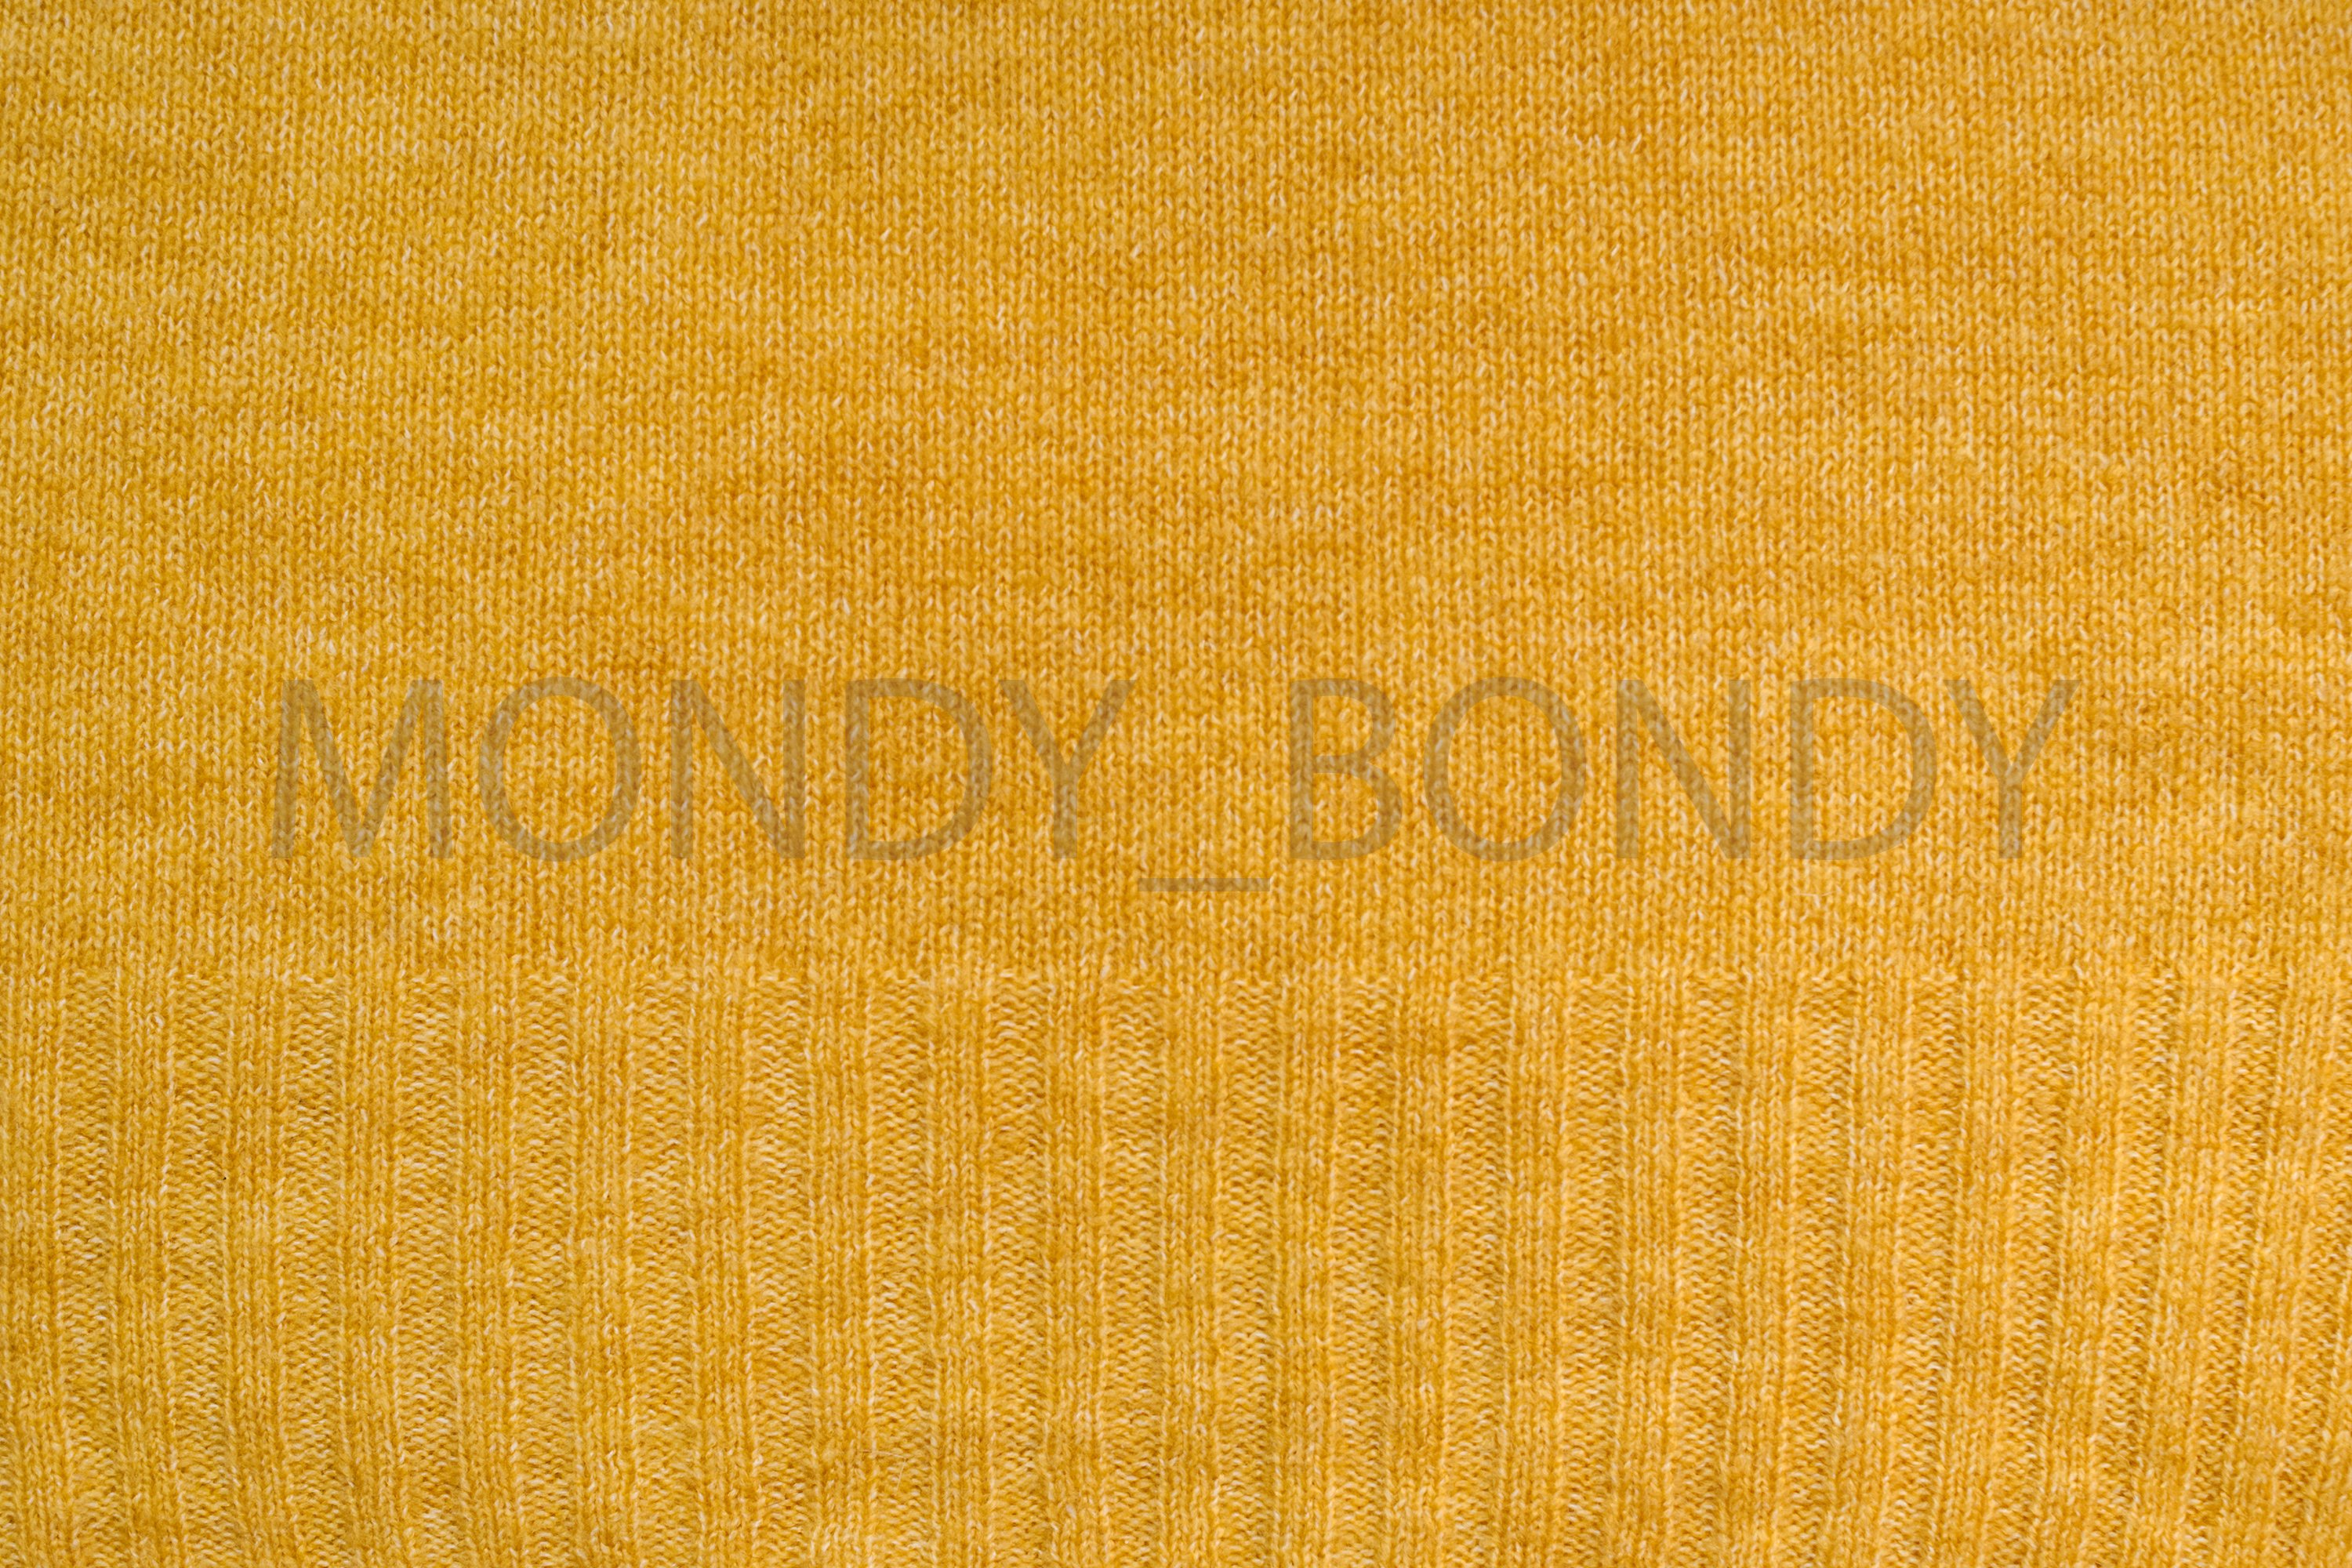 Texture of yellow woolen fabric closeup example image 1